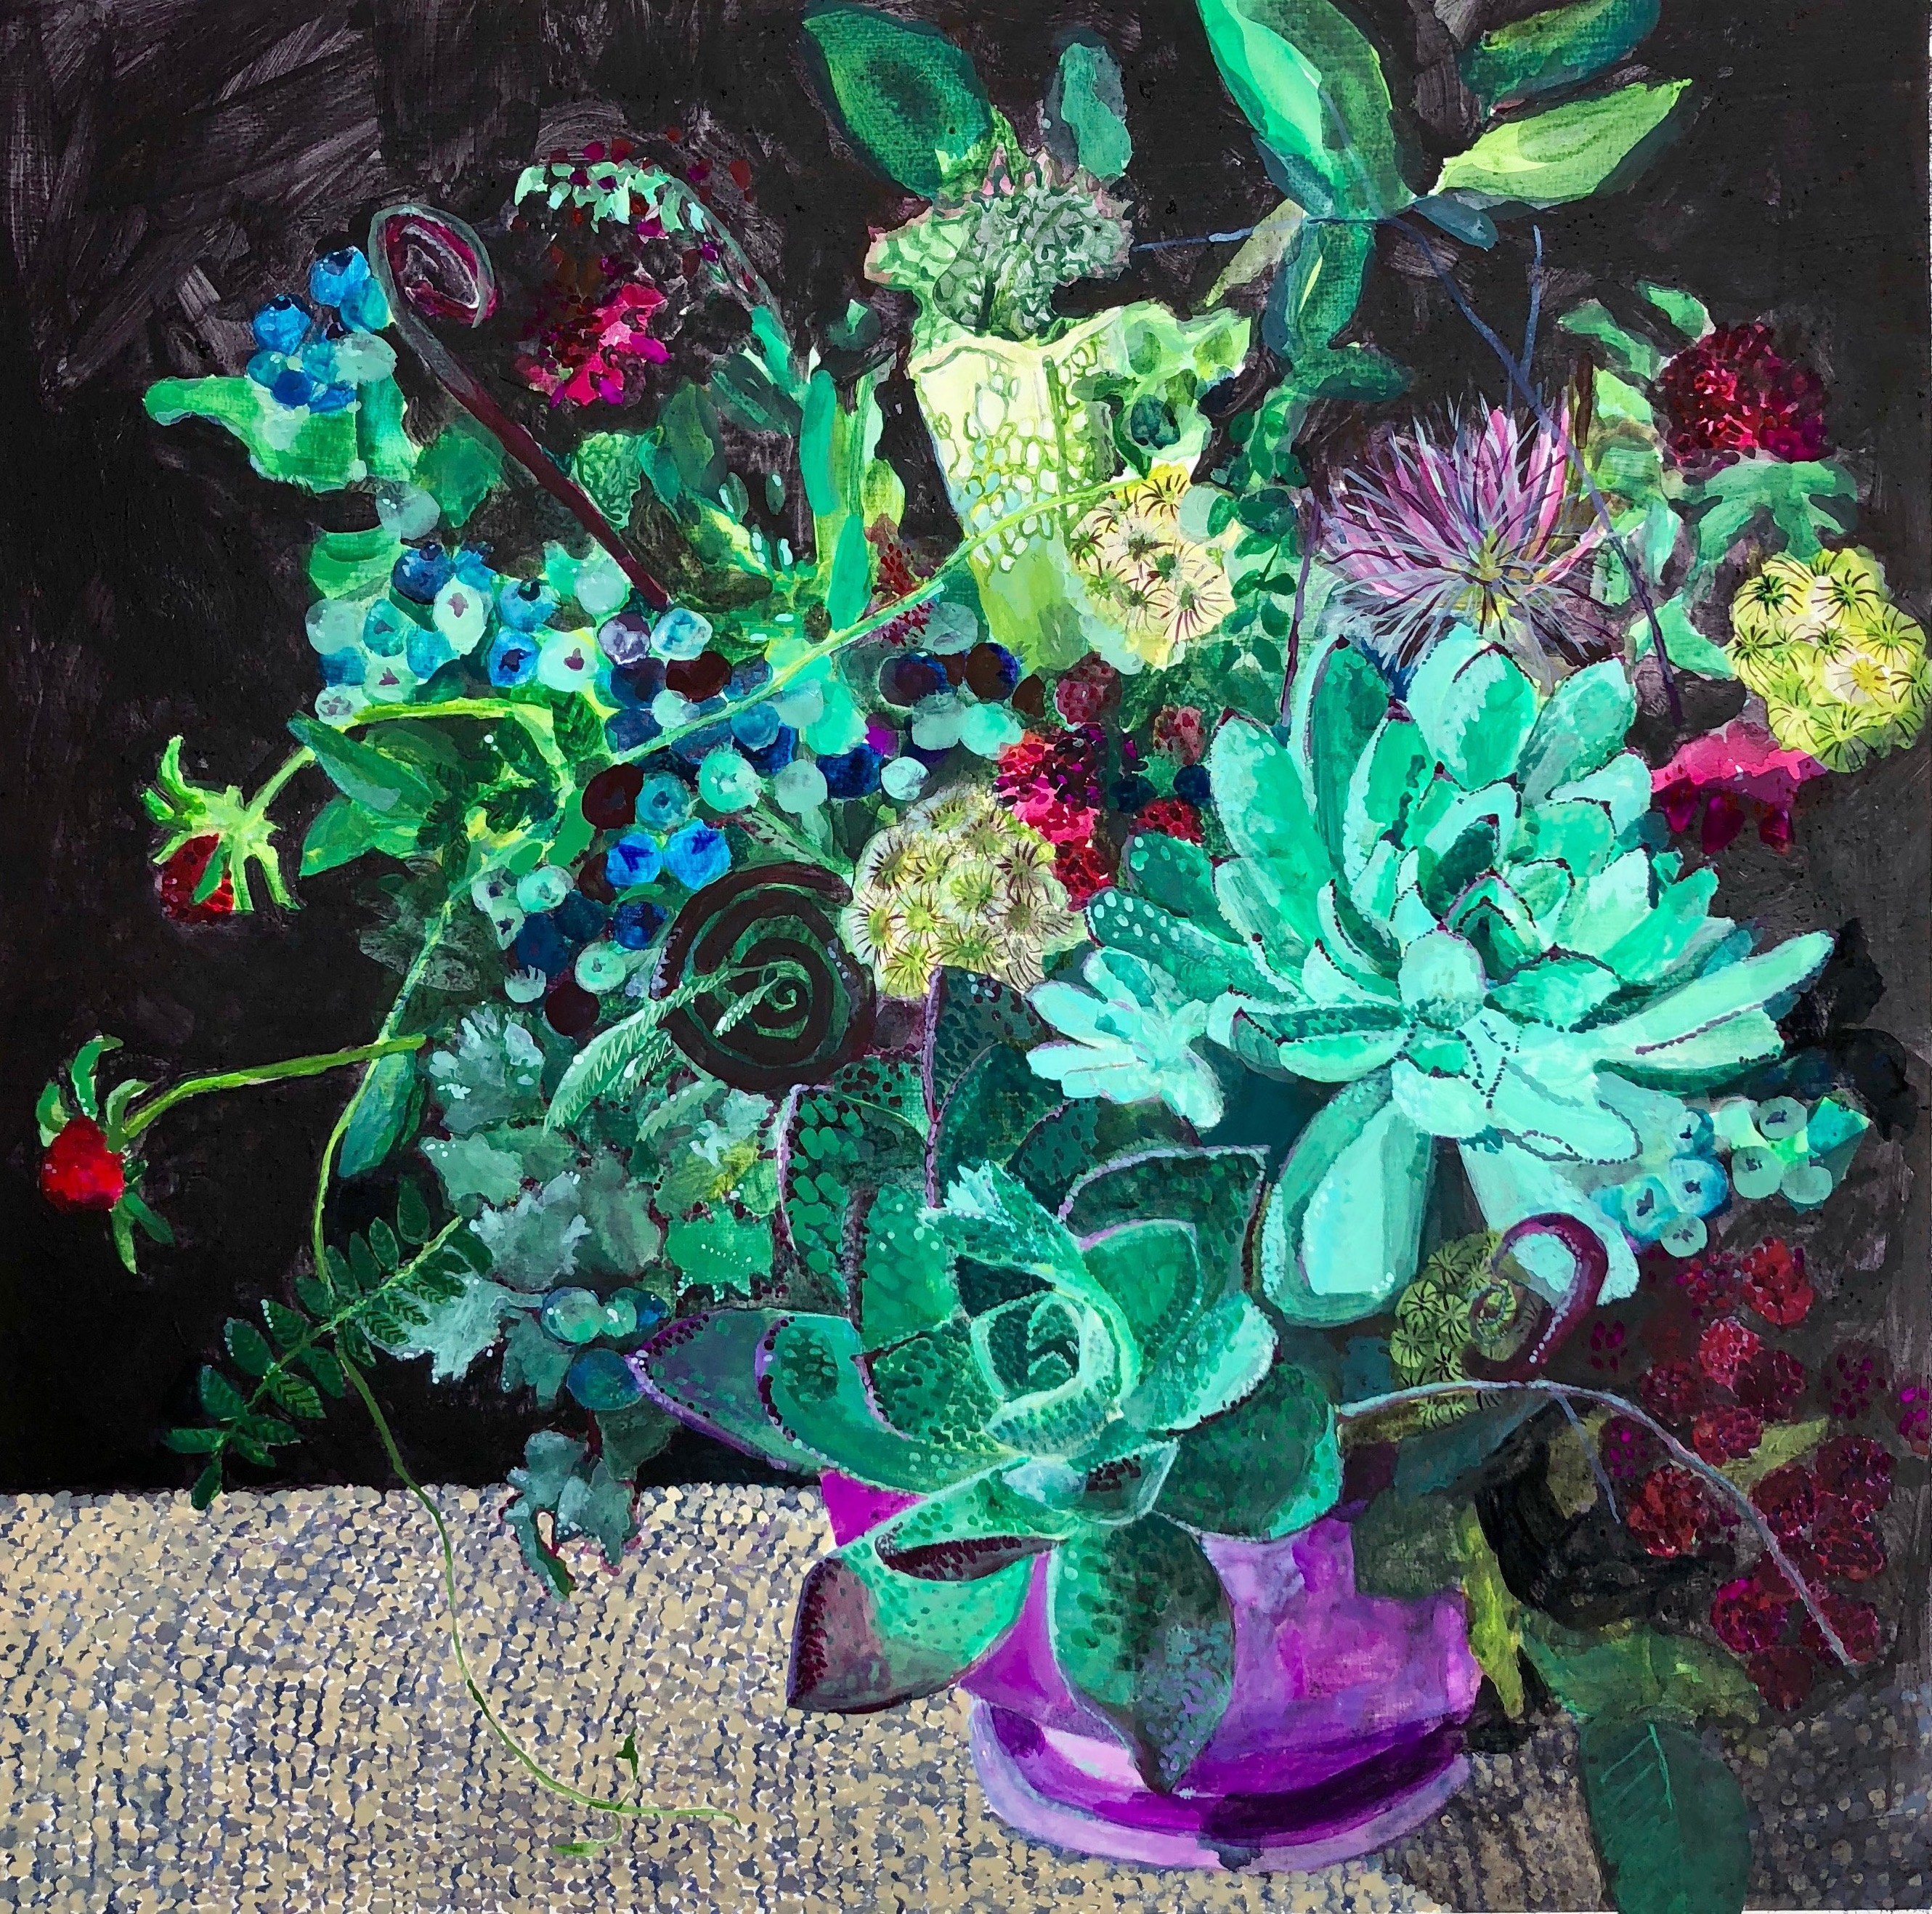 Untitled (Still life with succulent)